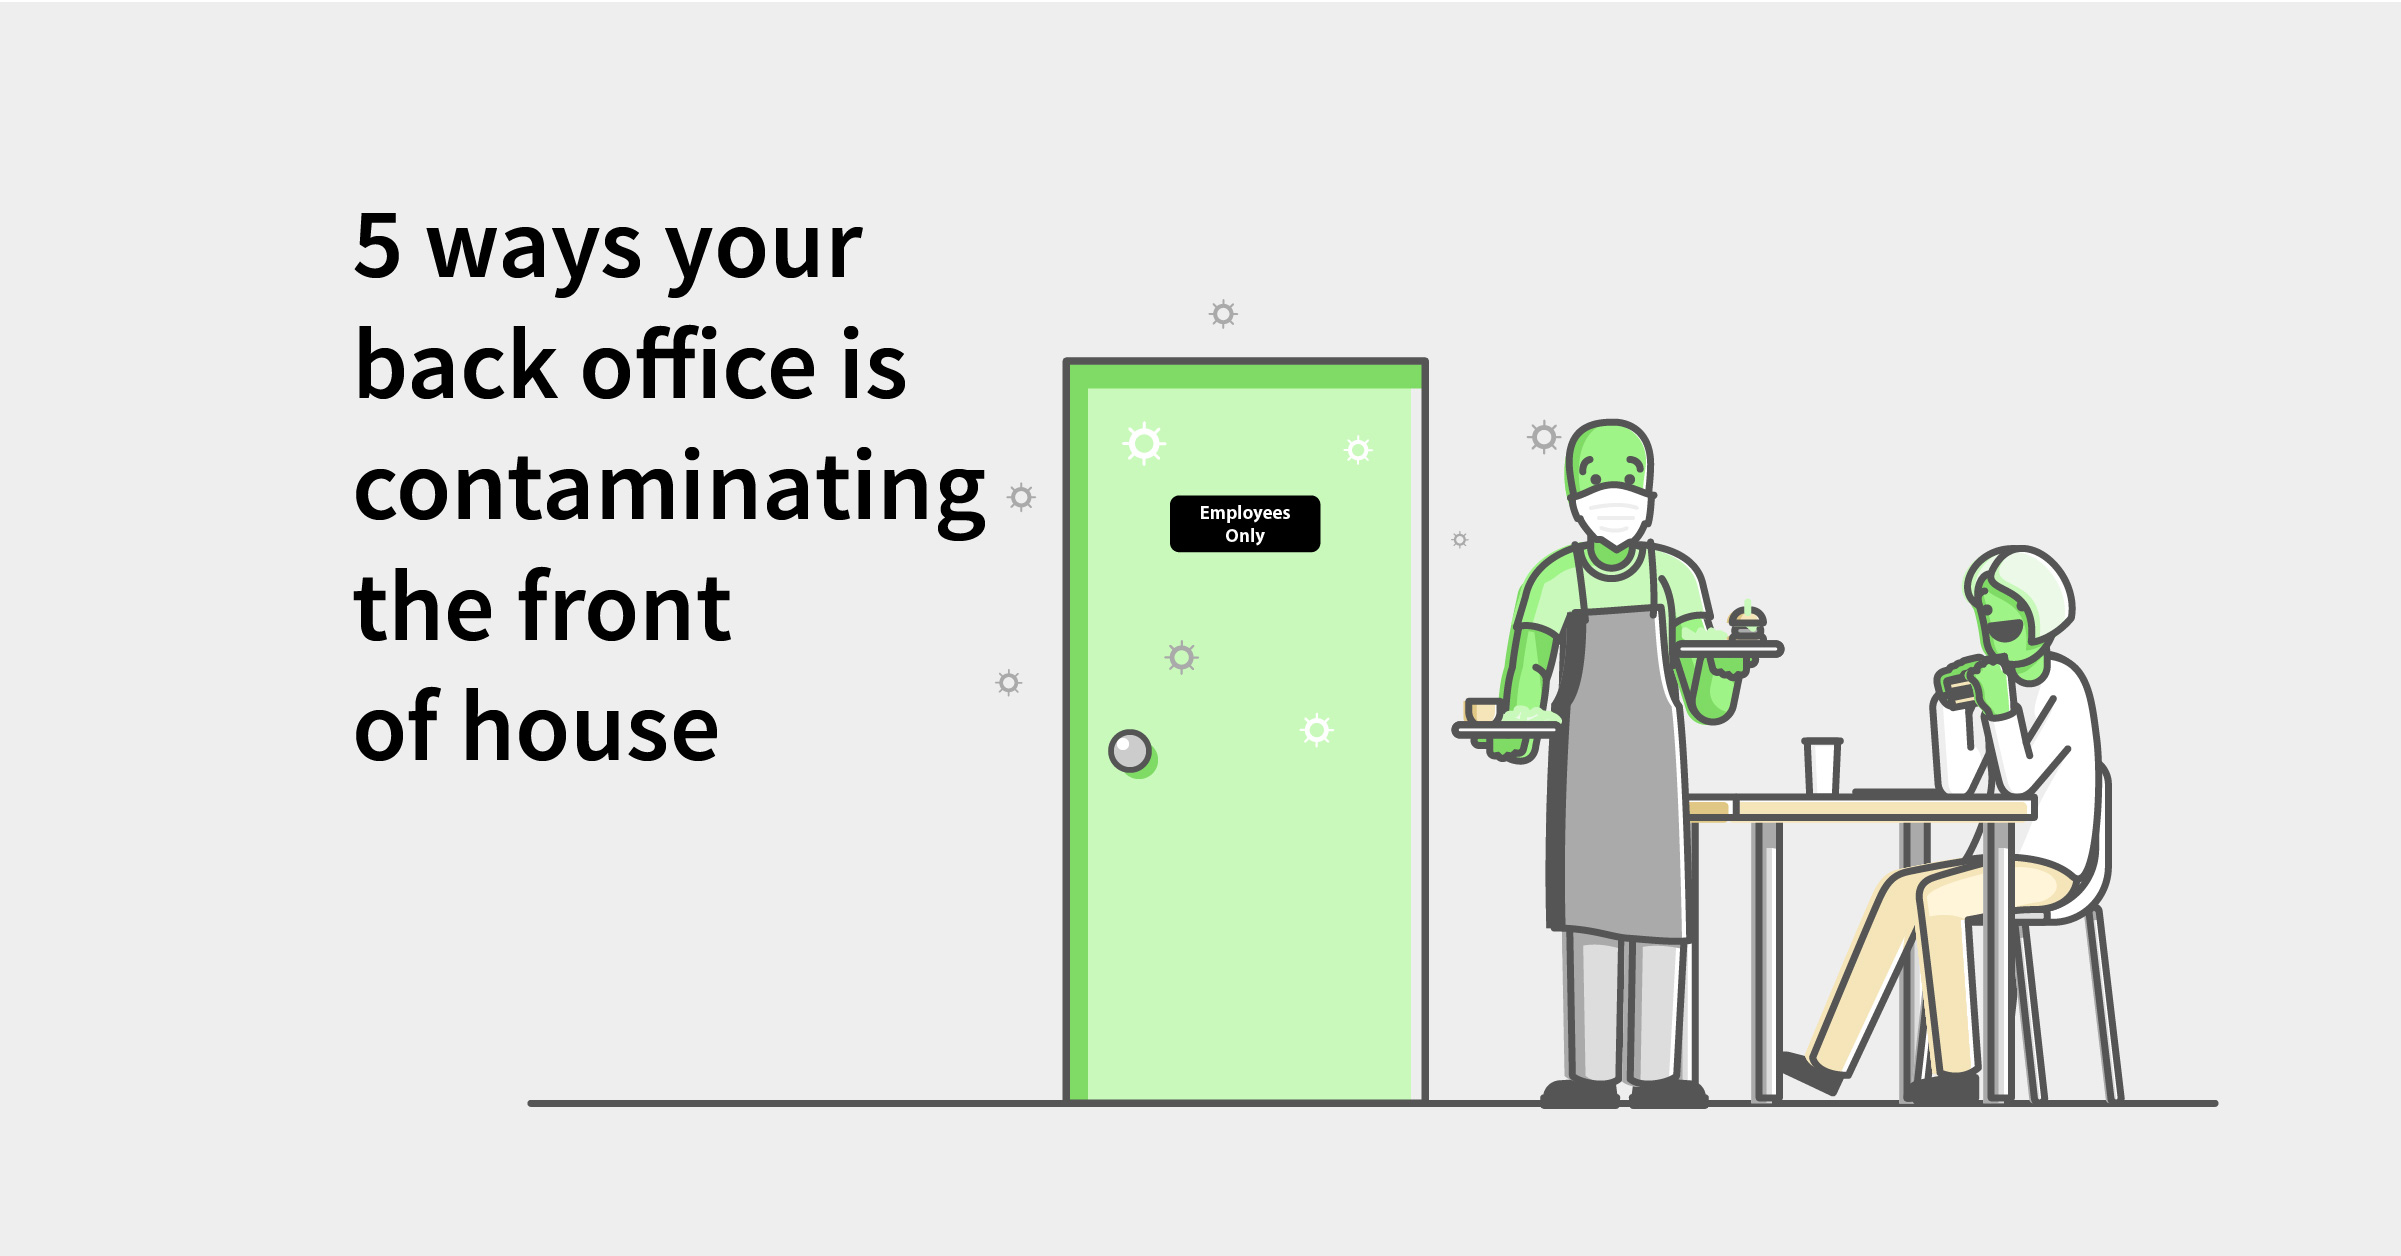 5 ways your back office is contaminating your front of house